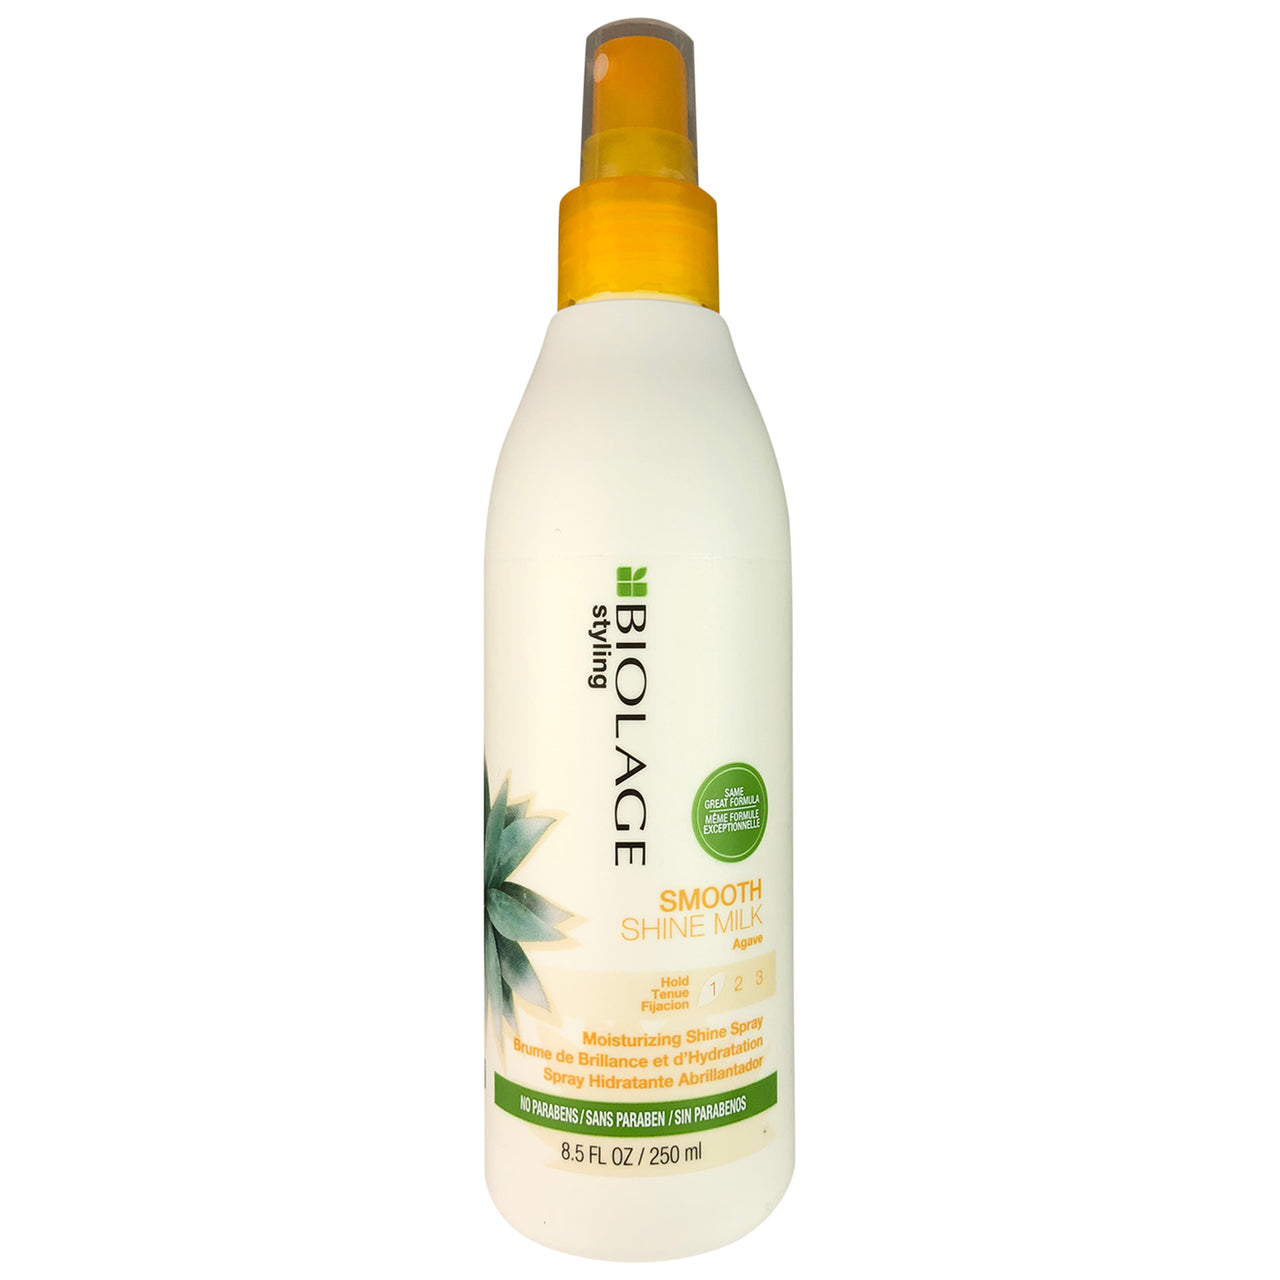 Matrix Biolage Smooth Shine Milk Hold 1 Moisturizing Shine Hair Spray  With Agave 8.5 oz No Parabens